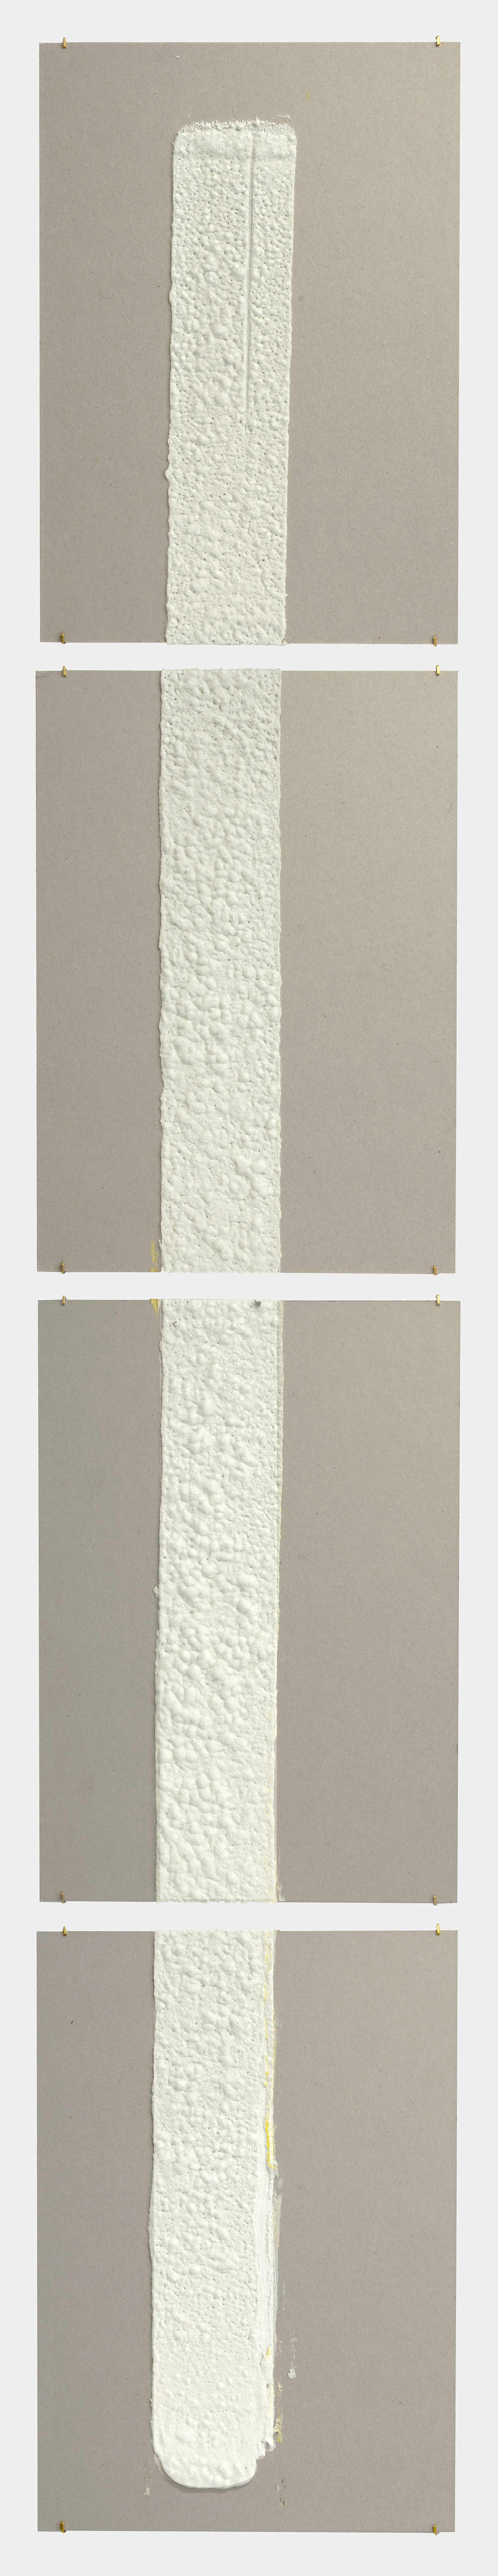 4in (section) (W), 2.27mm (T), White, Skips, Manual marking, Lexington Ave, Btw E77 St - E78 St,  2018  Set of 4 works Thermoplastic paint and reflective glass particles on grey boards 50 x 35 cm each